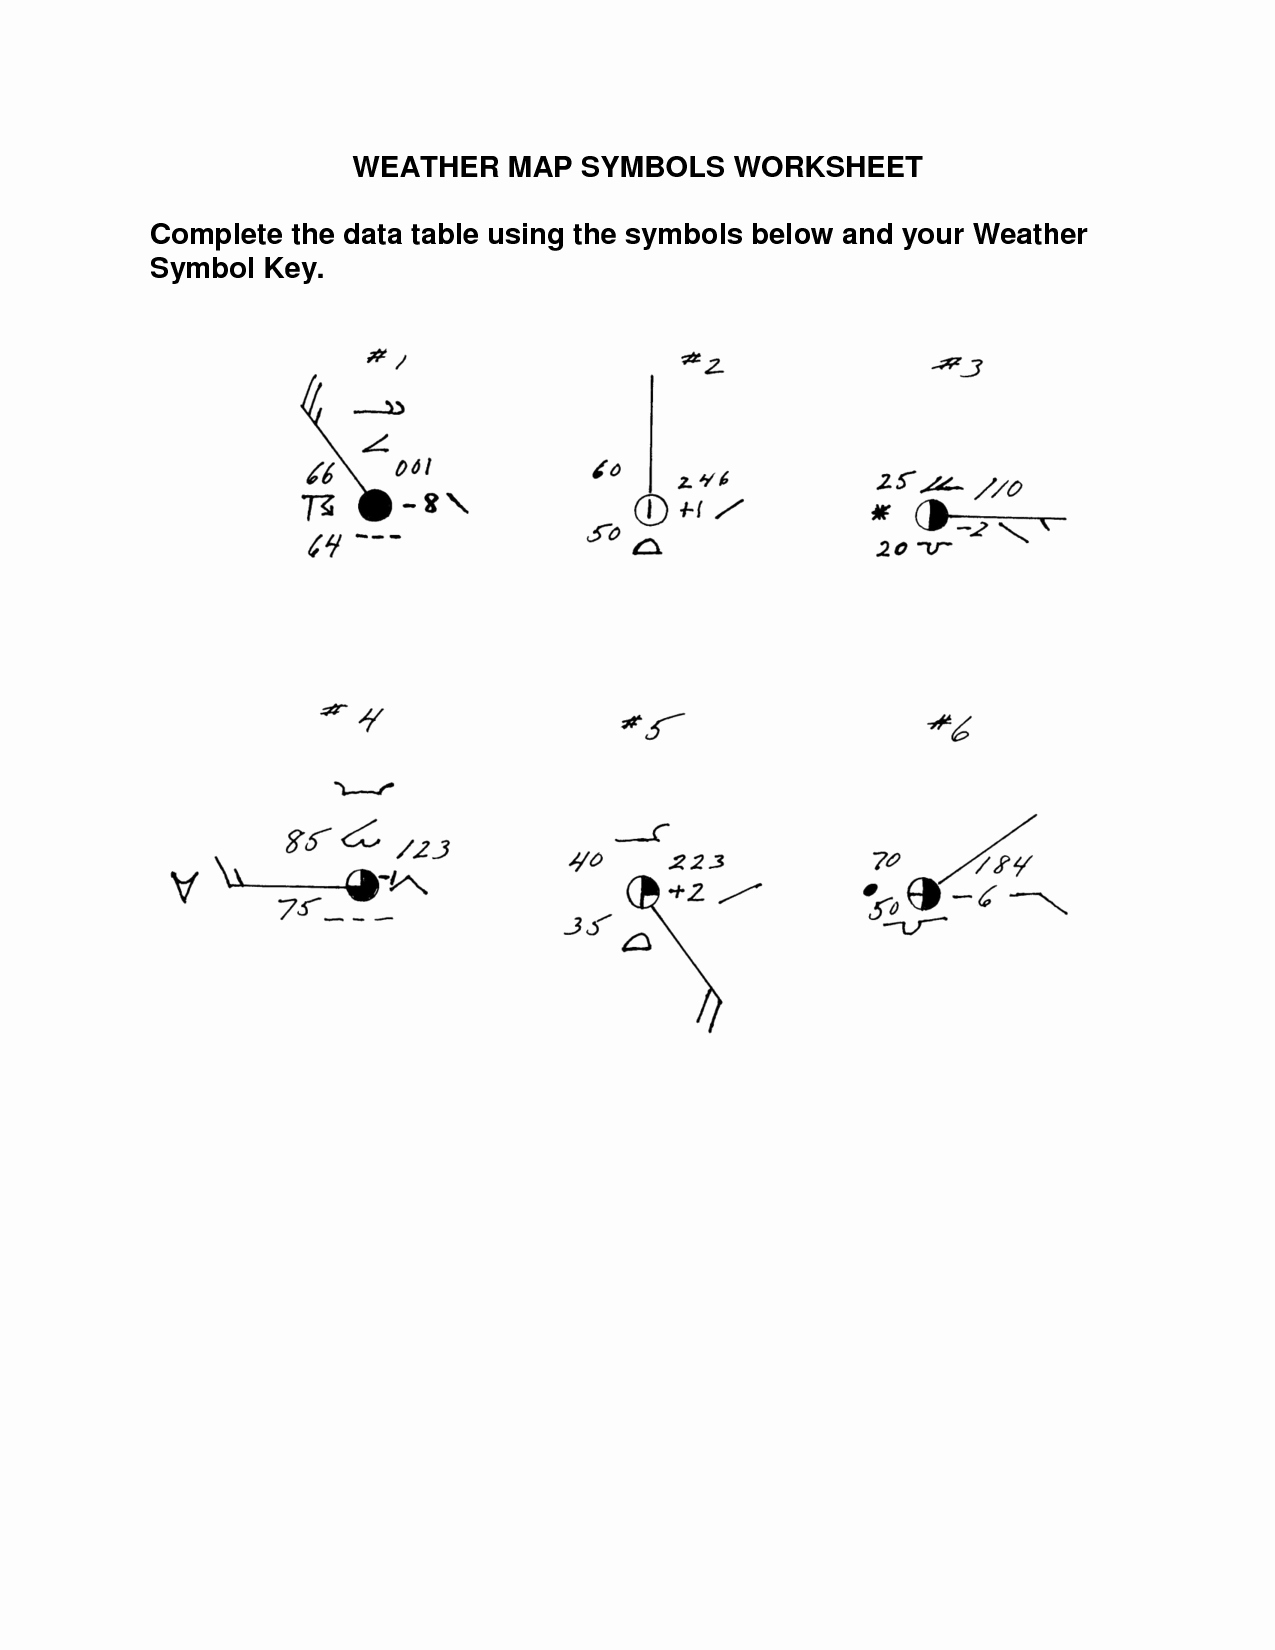 Weather Map Symbols Worksheet Lovely Map Symbols Worksheet Kindergarten